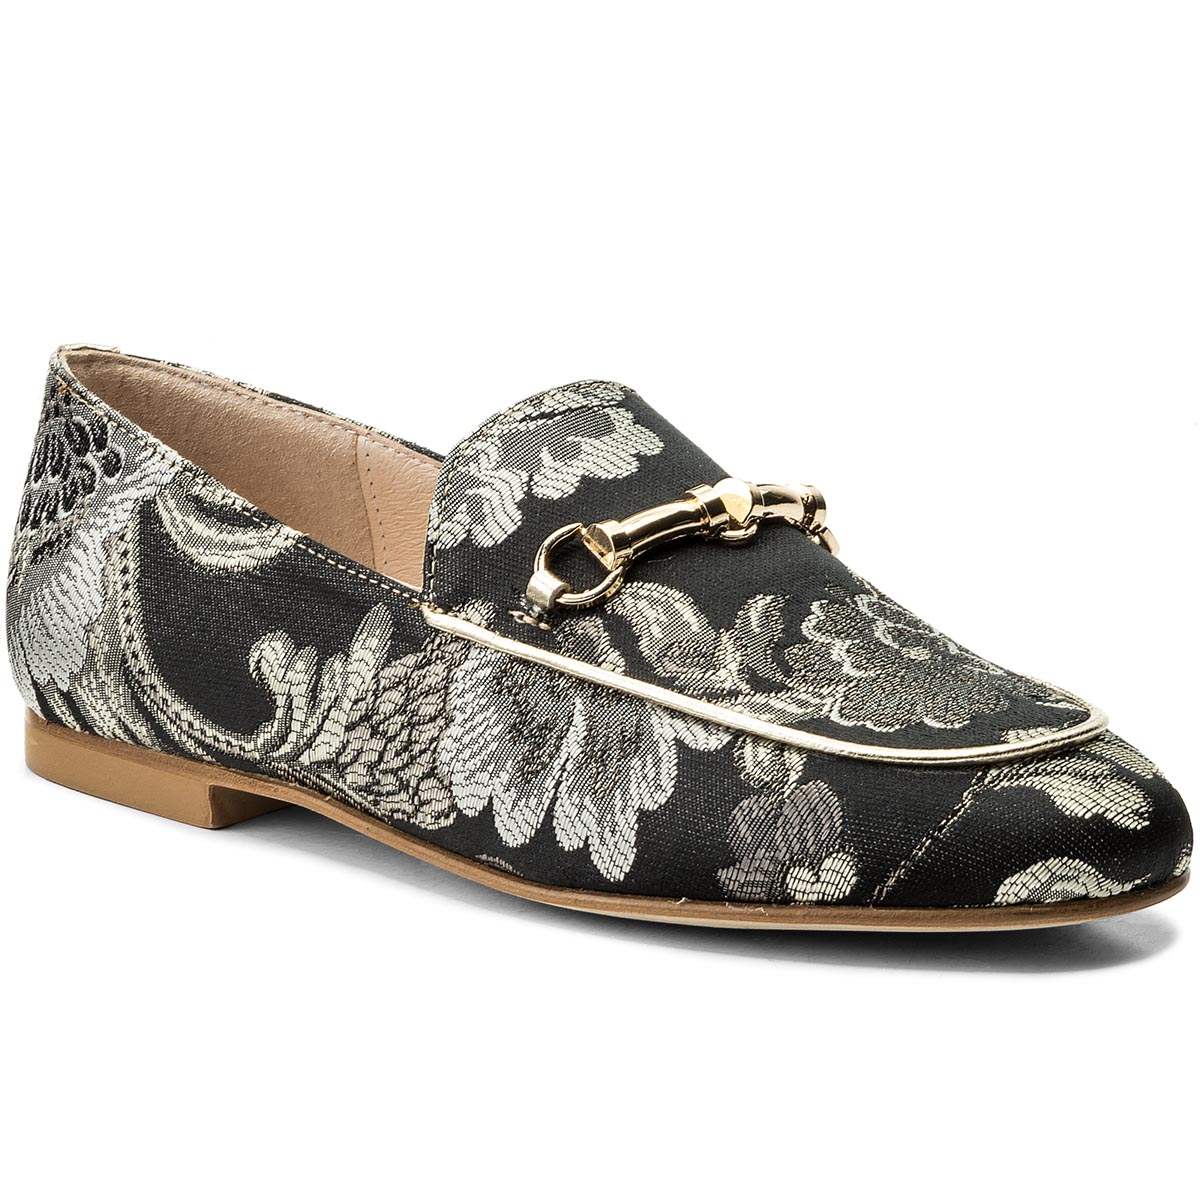 Loafers HEGO'S MILANO - 1020 Fiori Lam. Arg./Acc. Plat.